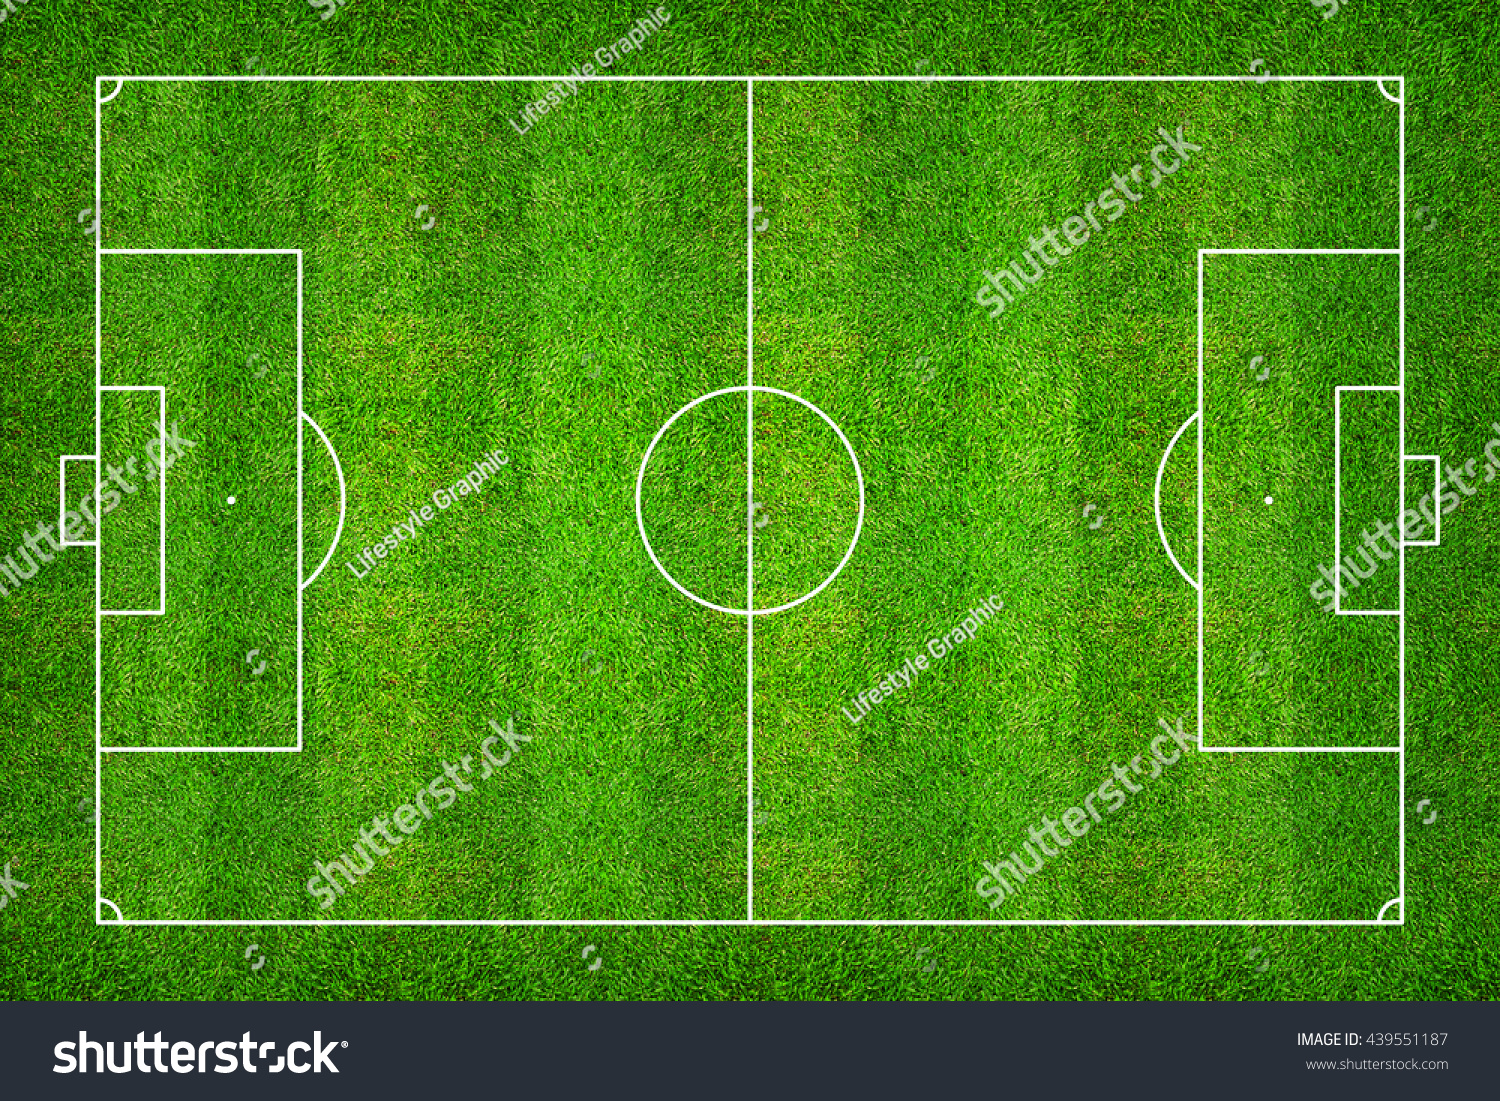 grass texture game transparent football field or soccer pattern texture background with clipping path abstract for create tactic and game strategy